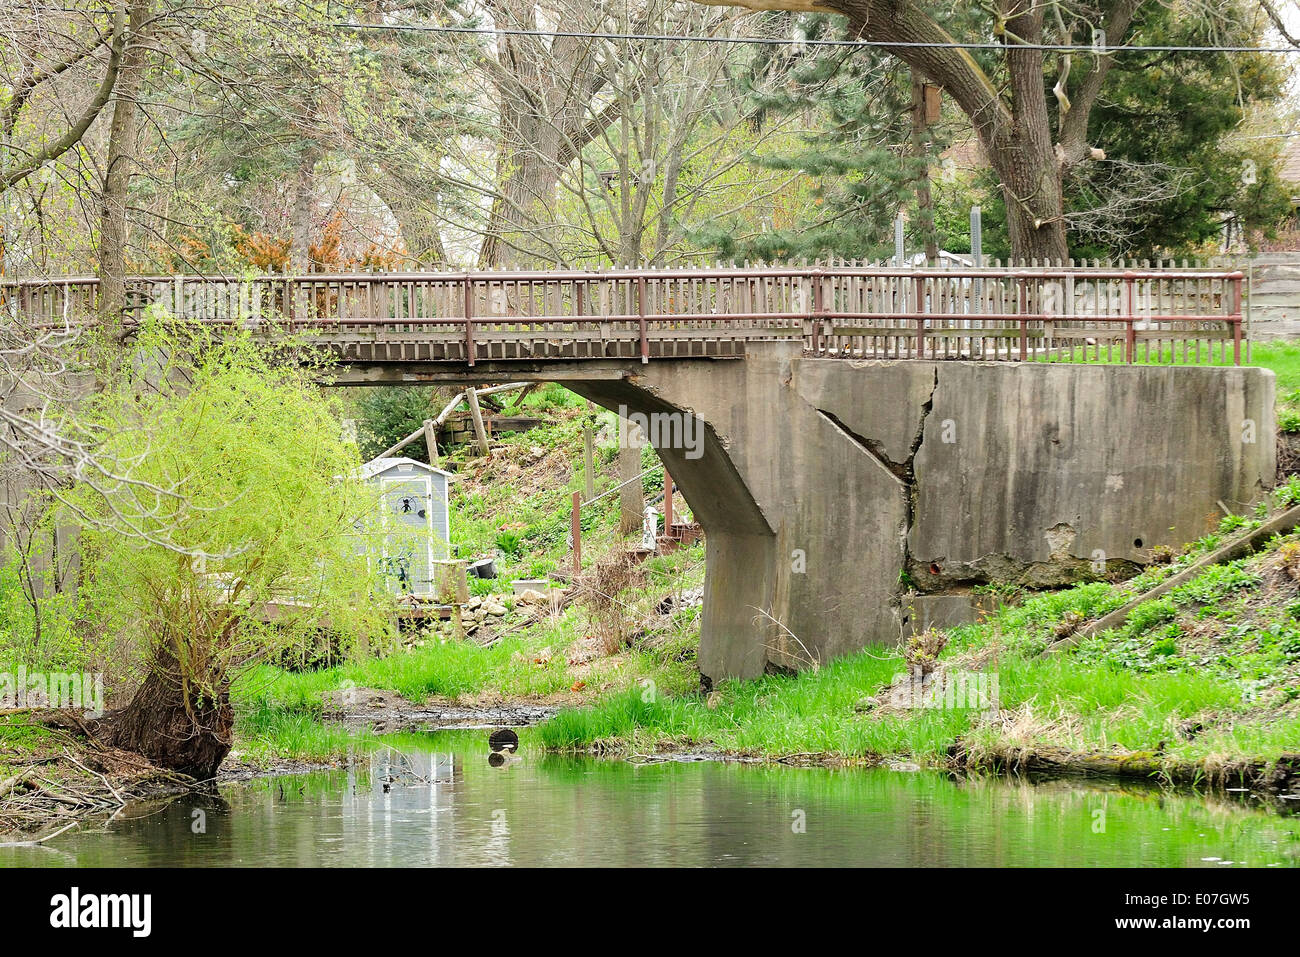 Decaying bridge over channel leading to island. - Stock Image